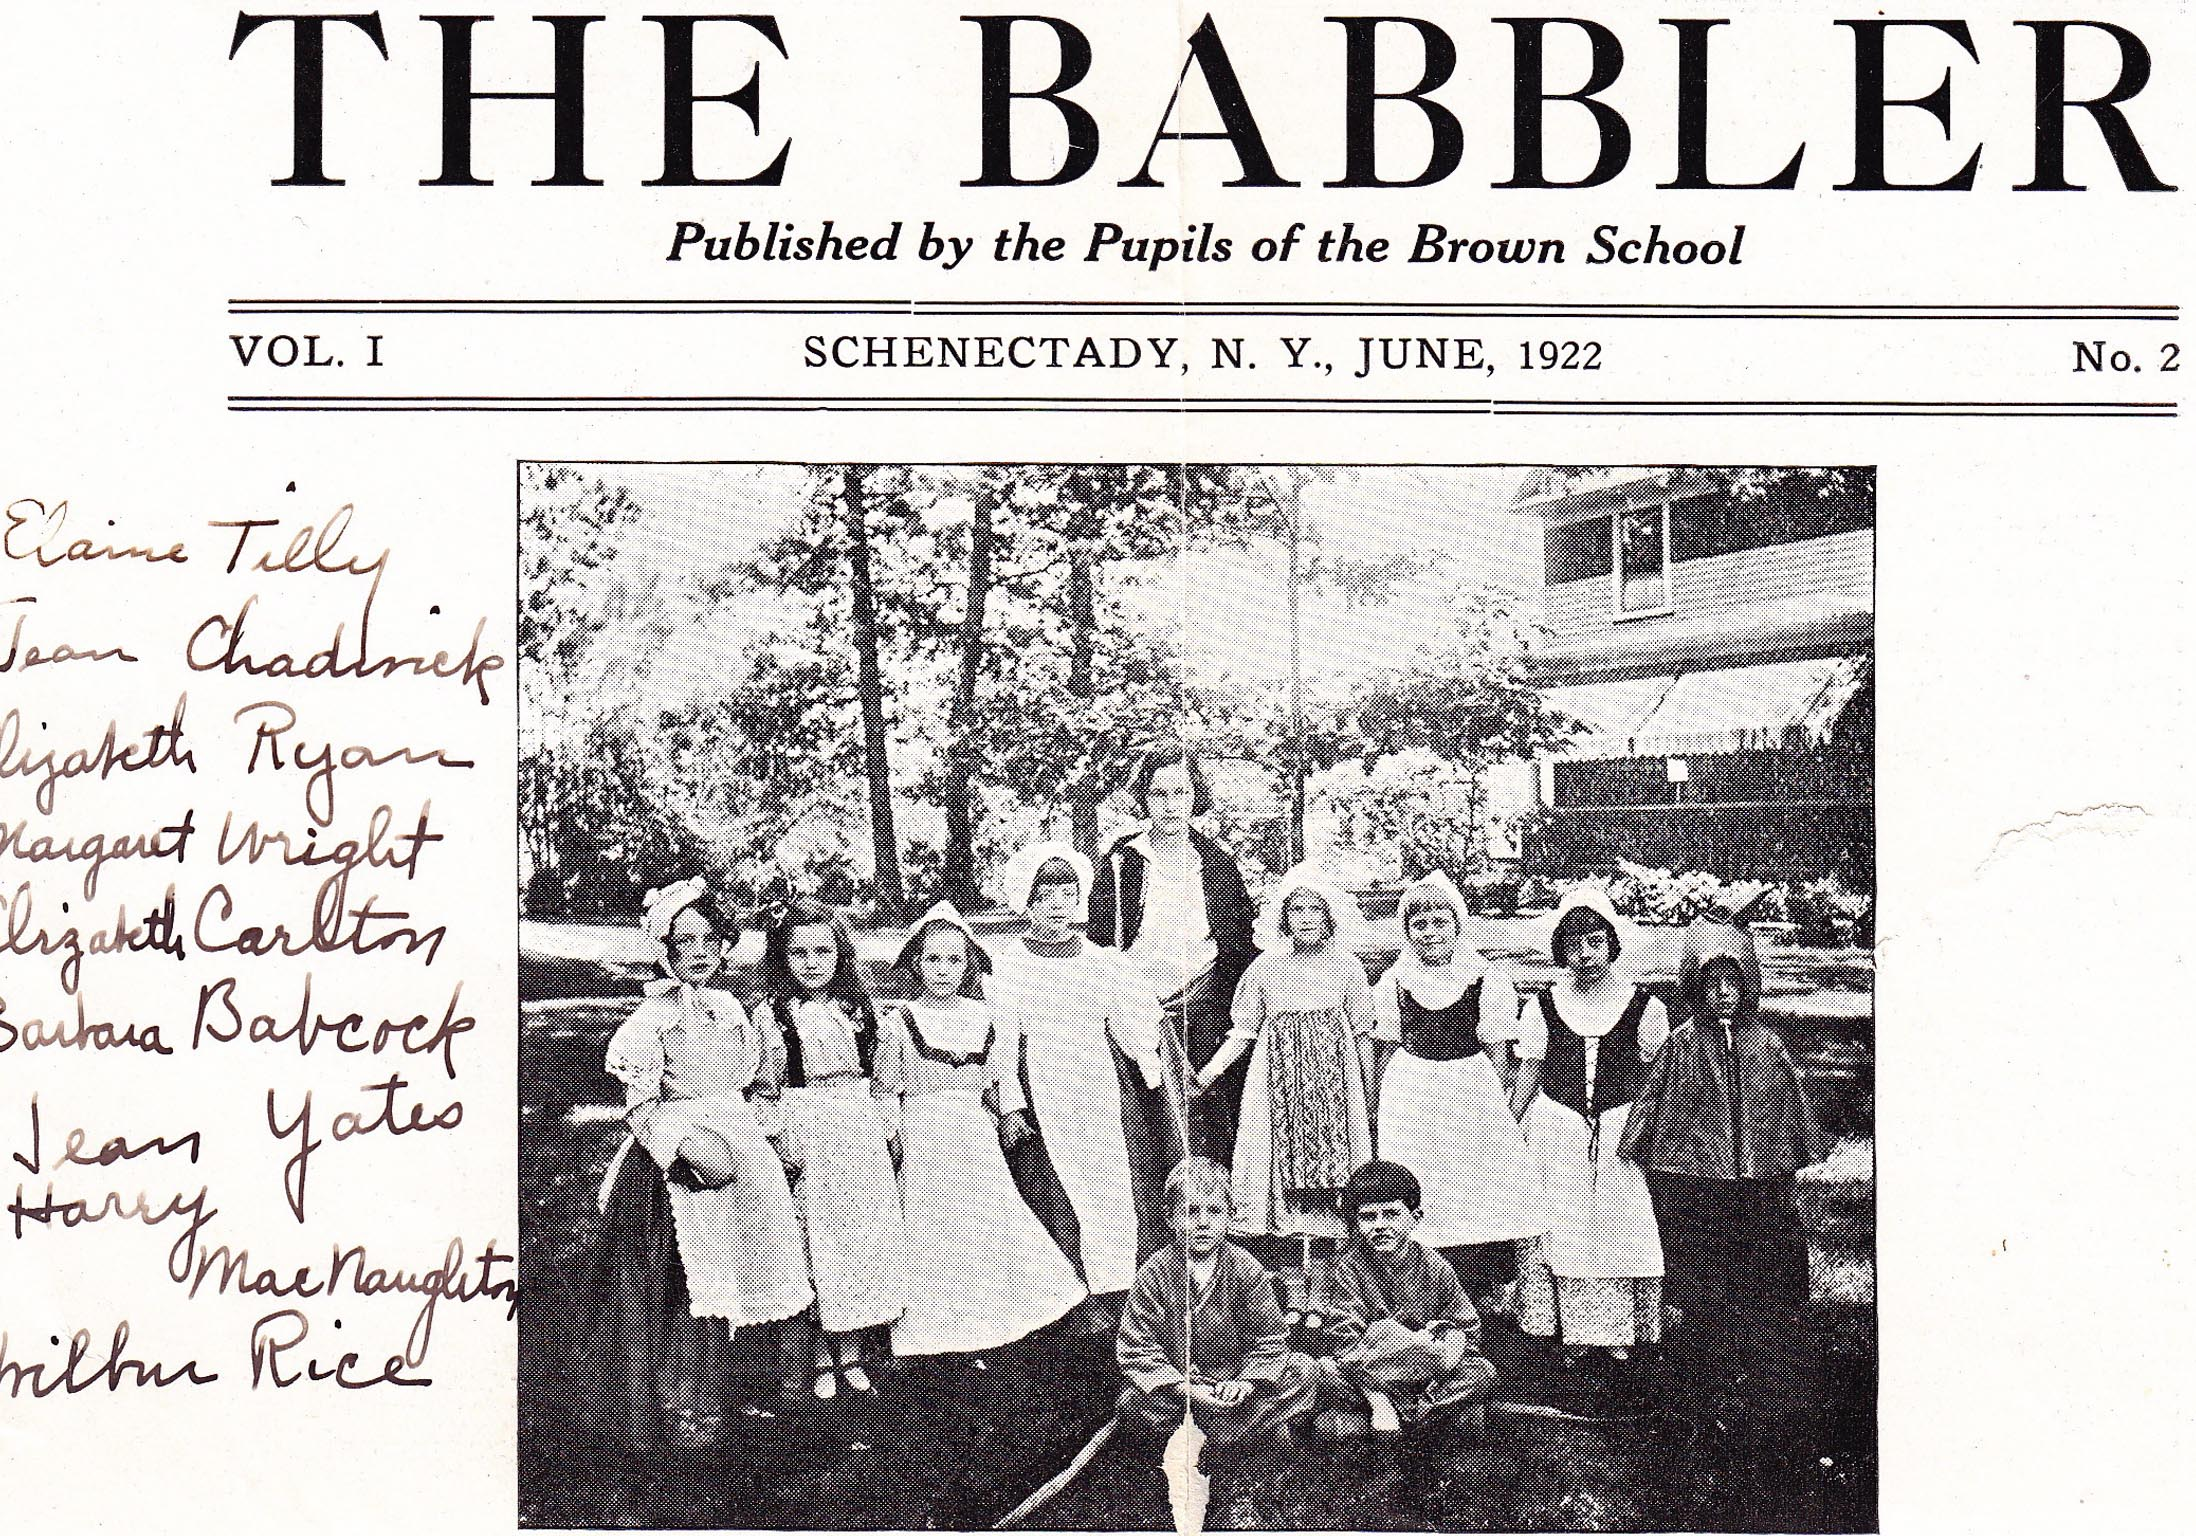 Brown School historical picture